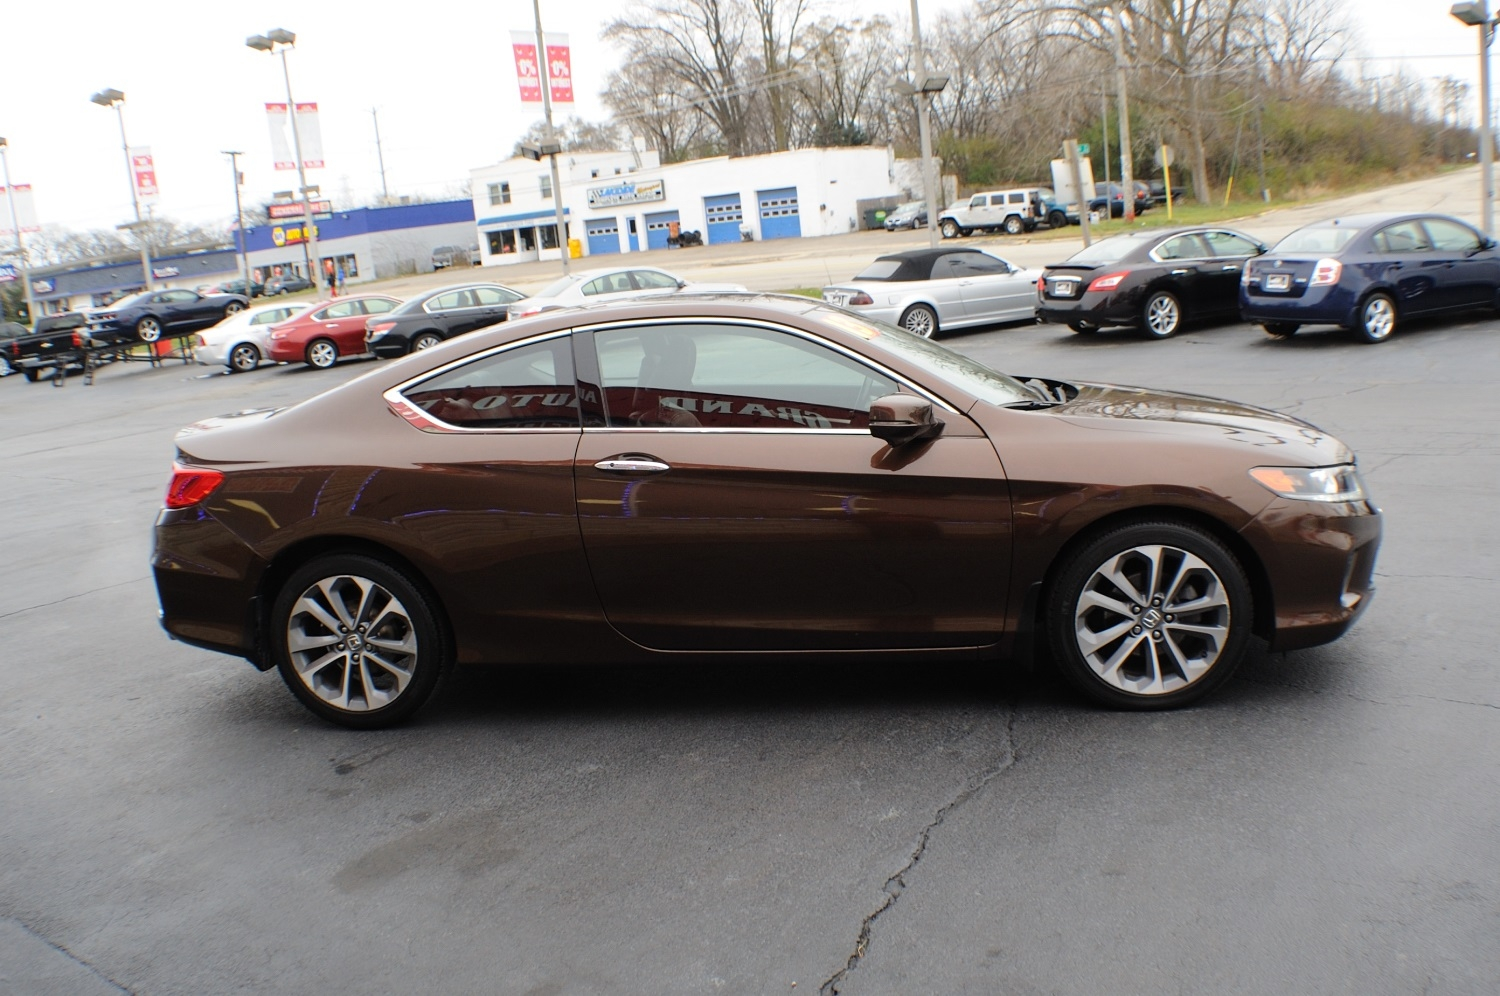 2013 honda accord brown coupe used car sale. Black Bedroom Furniture Sets. Home Design Ideas